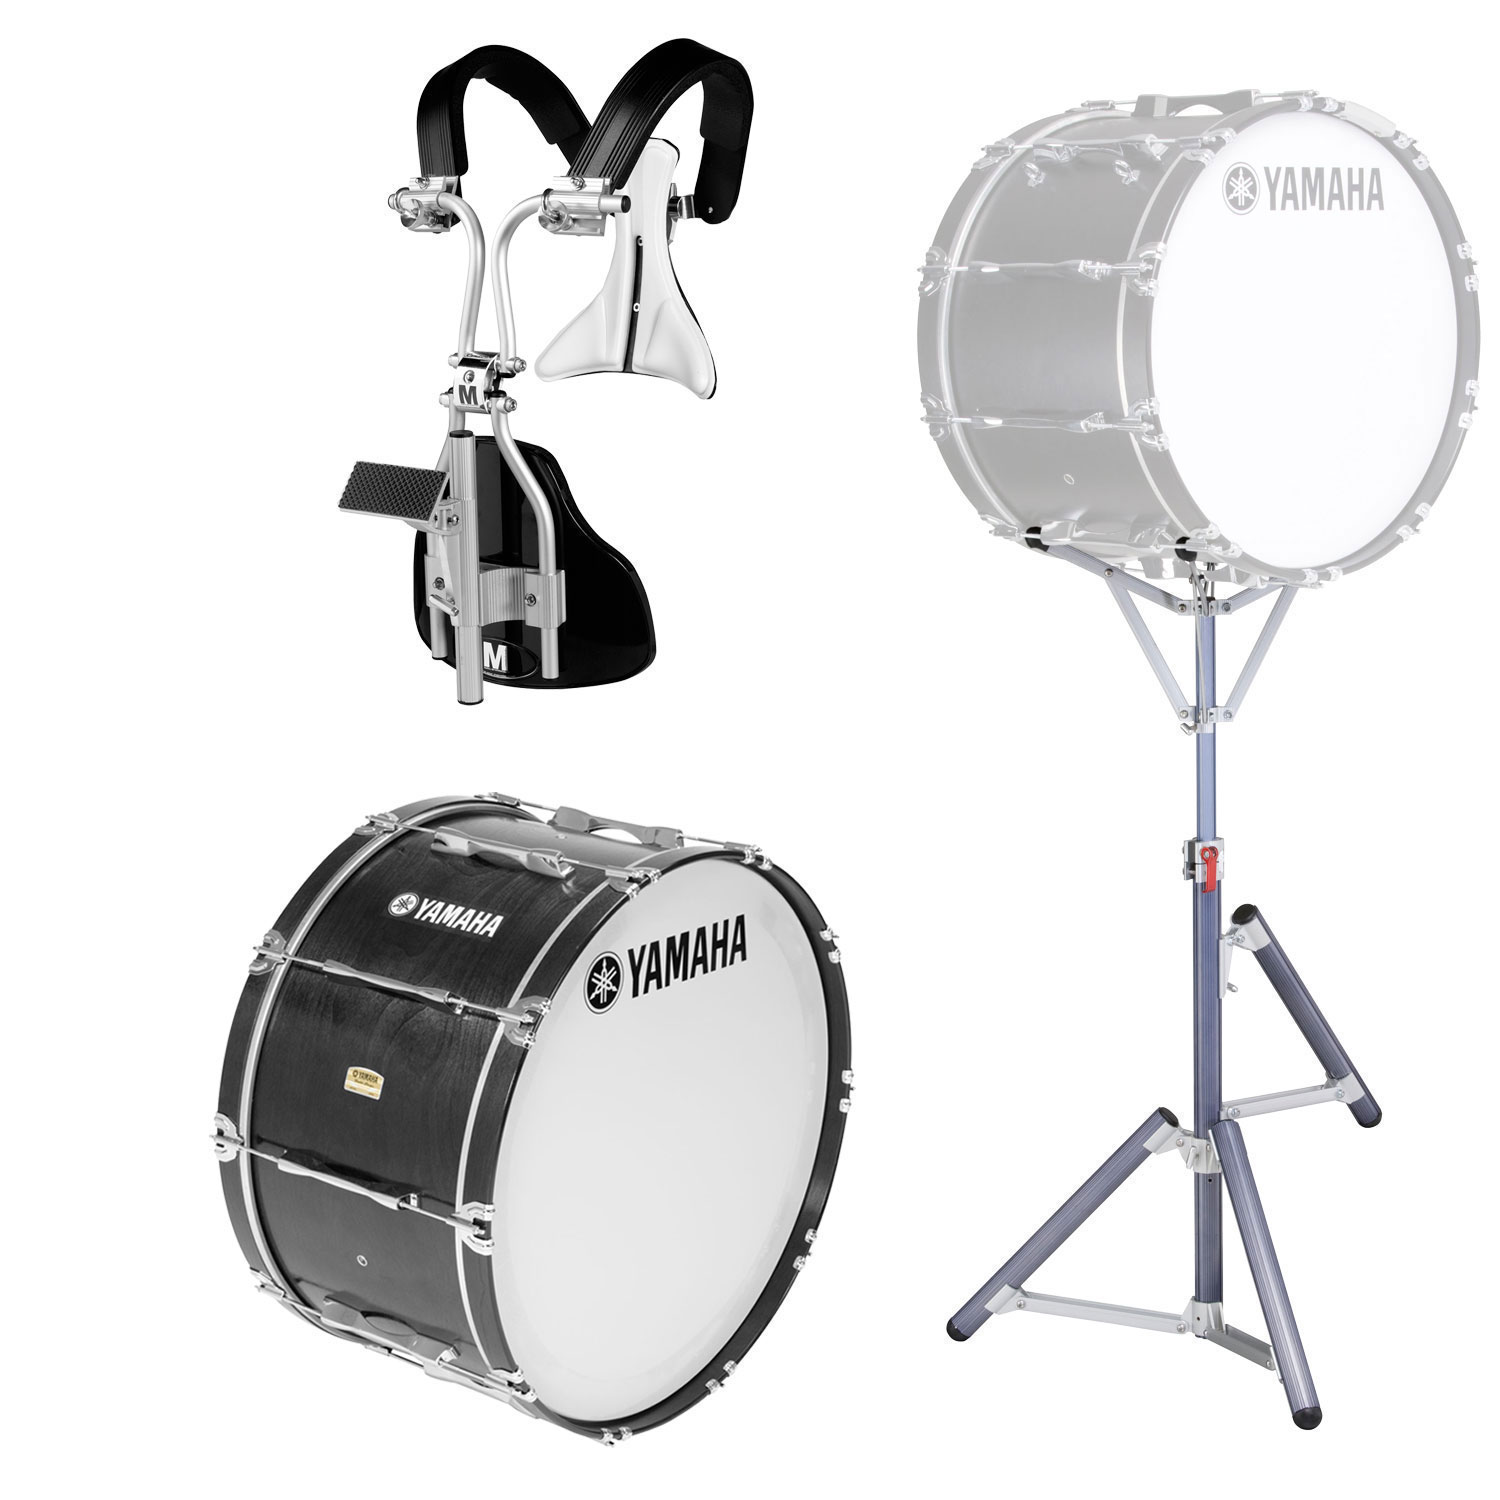 "Yamaha 30"" 8300 Field-Corps Marching Bass Drum with MonoPosto Carrier and Stand in Black Forest (Used)"